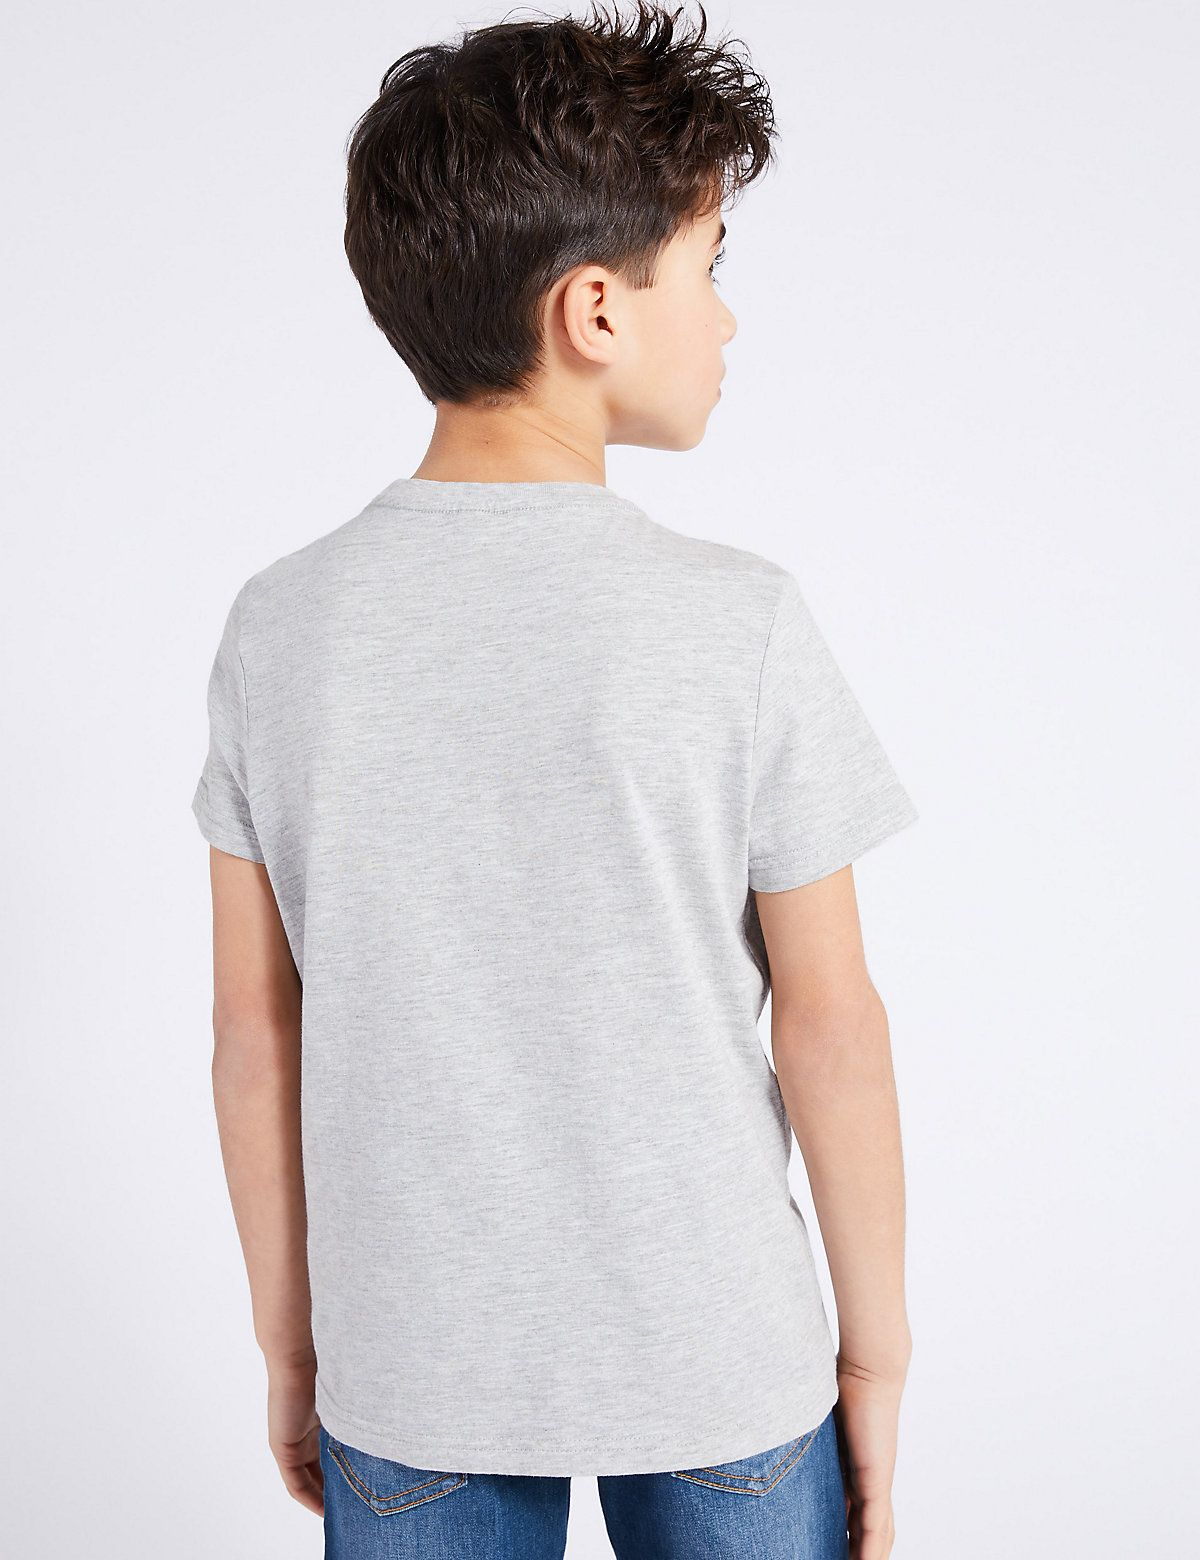 Cotton TShirt with Pocket (316 Yrs) M&S in 2020